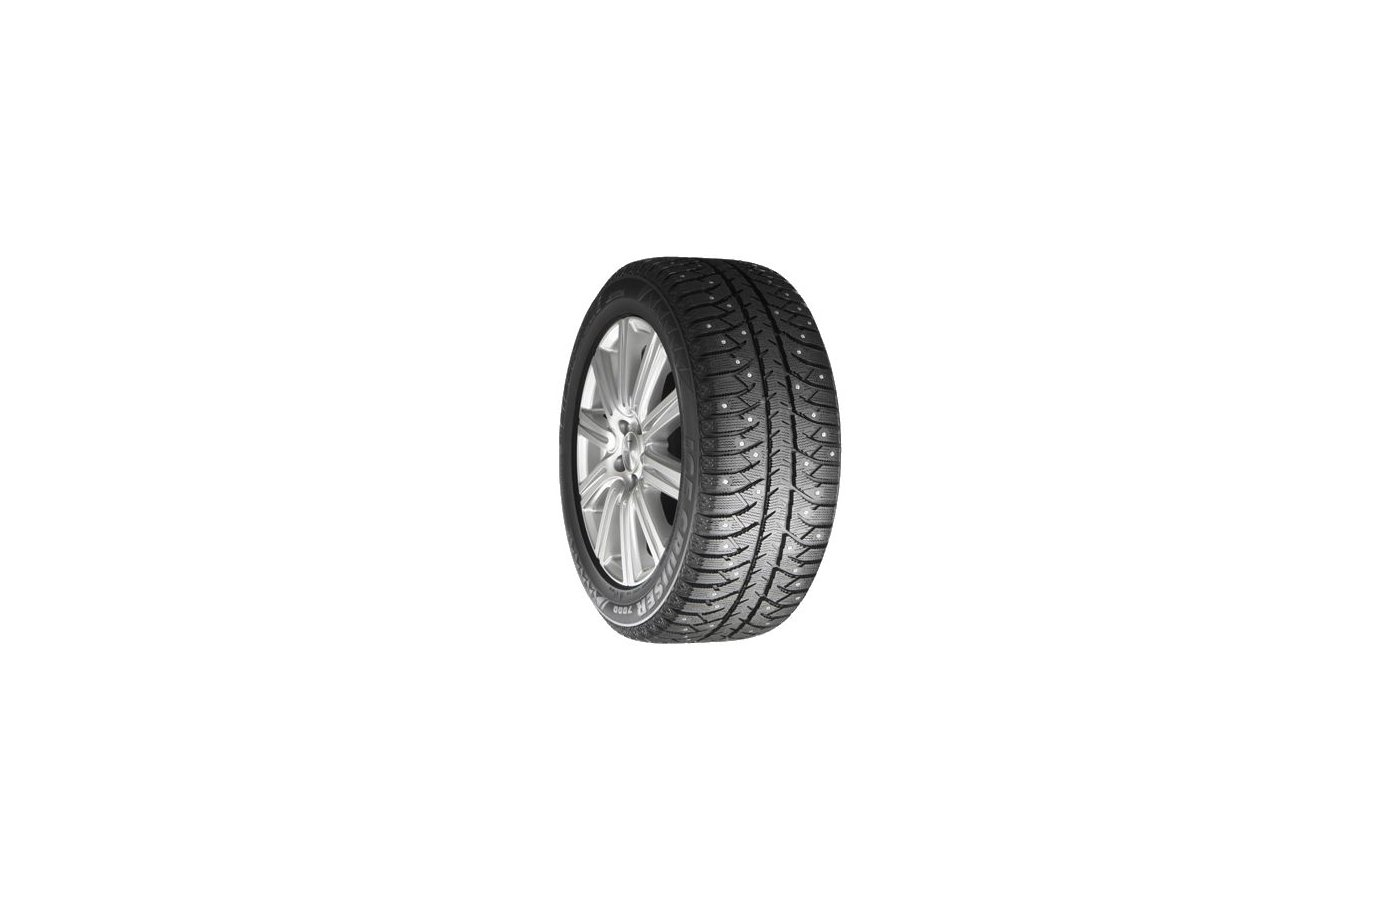 Шина Bridgestone Ice Cruiser 7000 215/70 R16 TL 100T шип